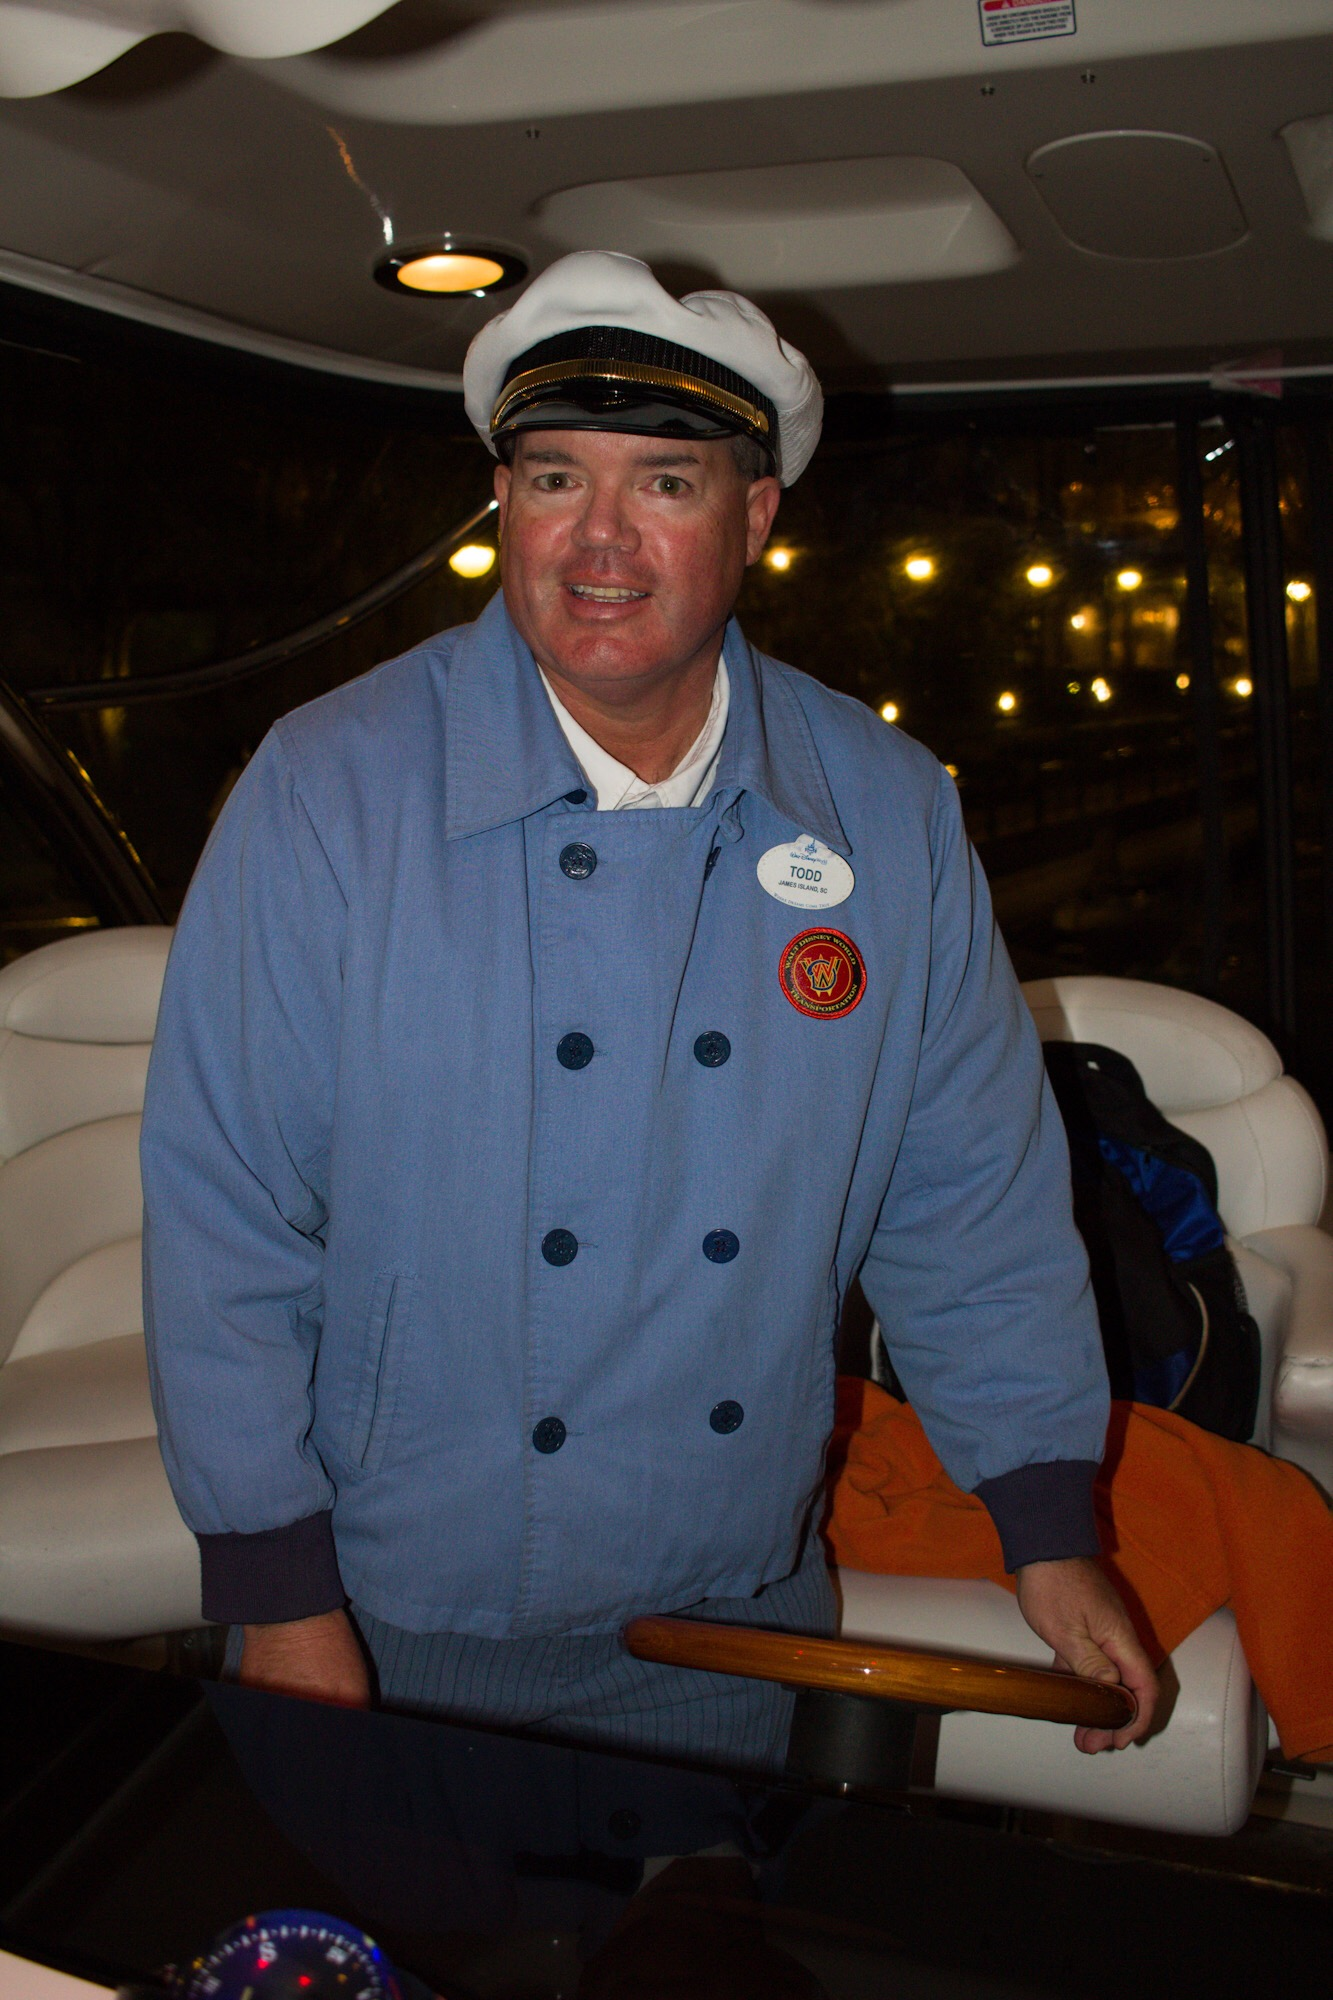 Todd -- Captain of the Grand 1 Yacht